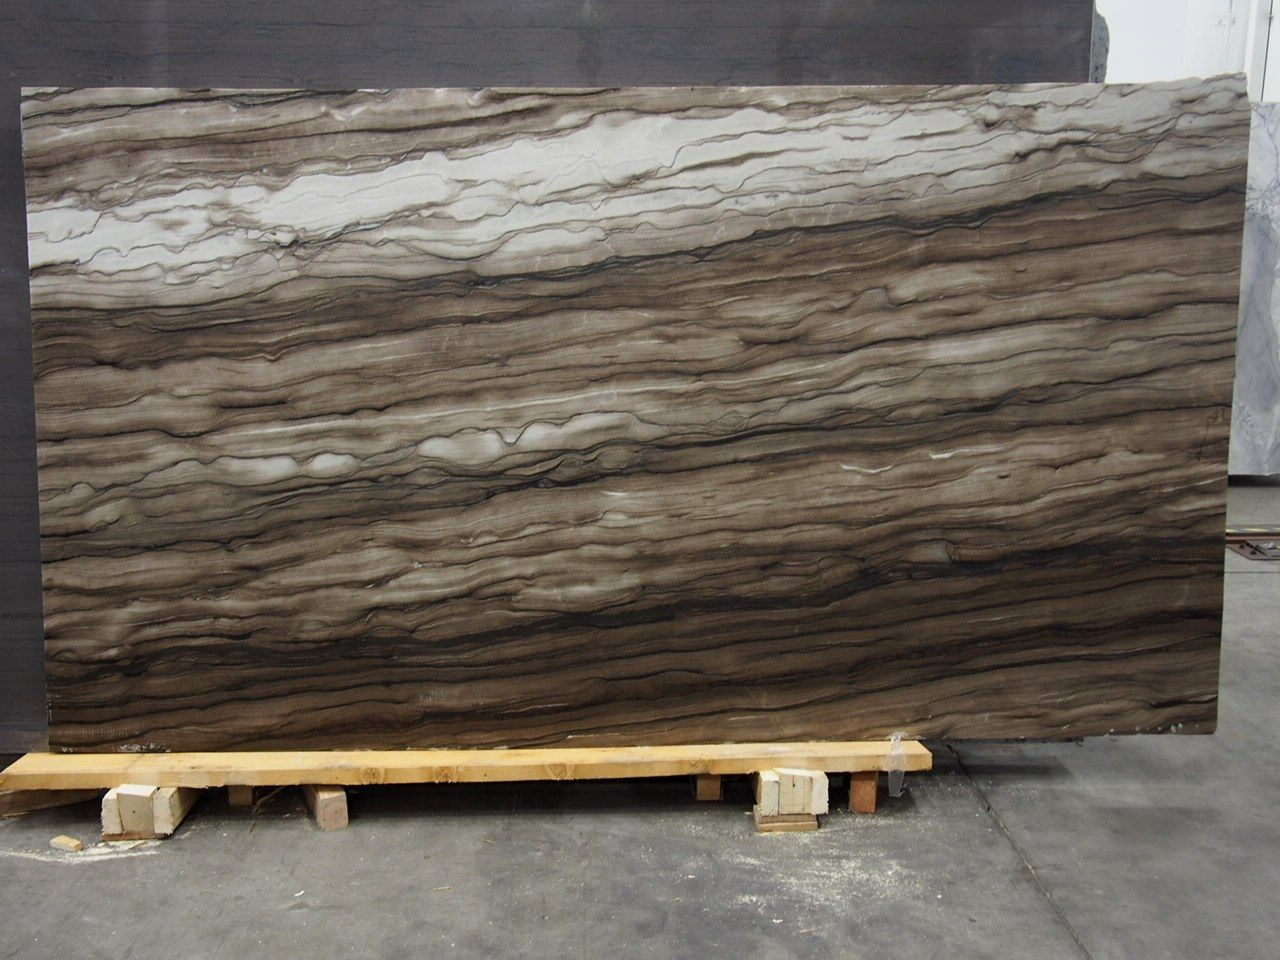 Sequoia Brown Leather Quartzite Slab Sold By Milestone Marble Size 62 X 112 X 3 4 Inches Stone Slab Geometric Tiles Slate Stone